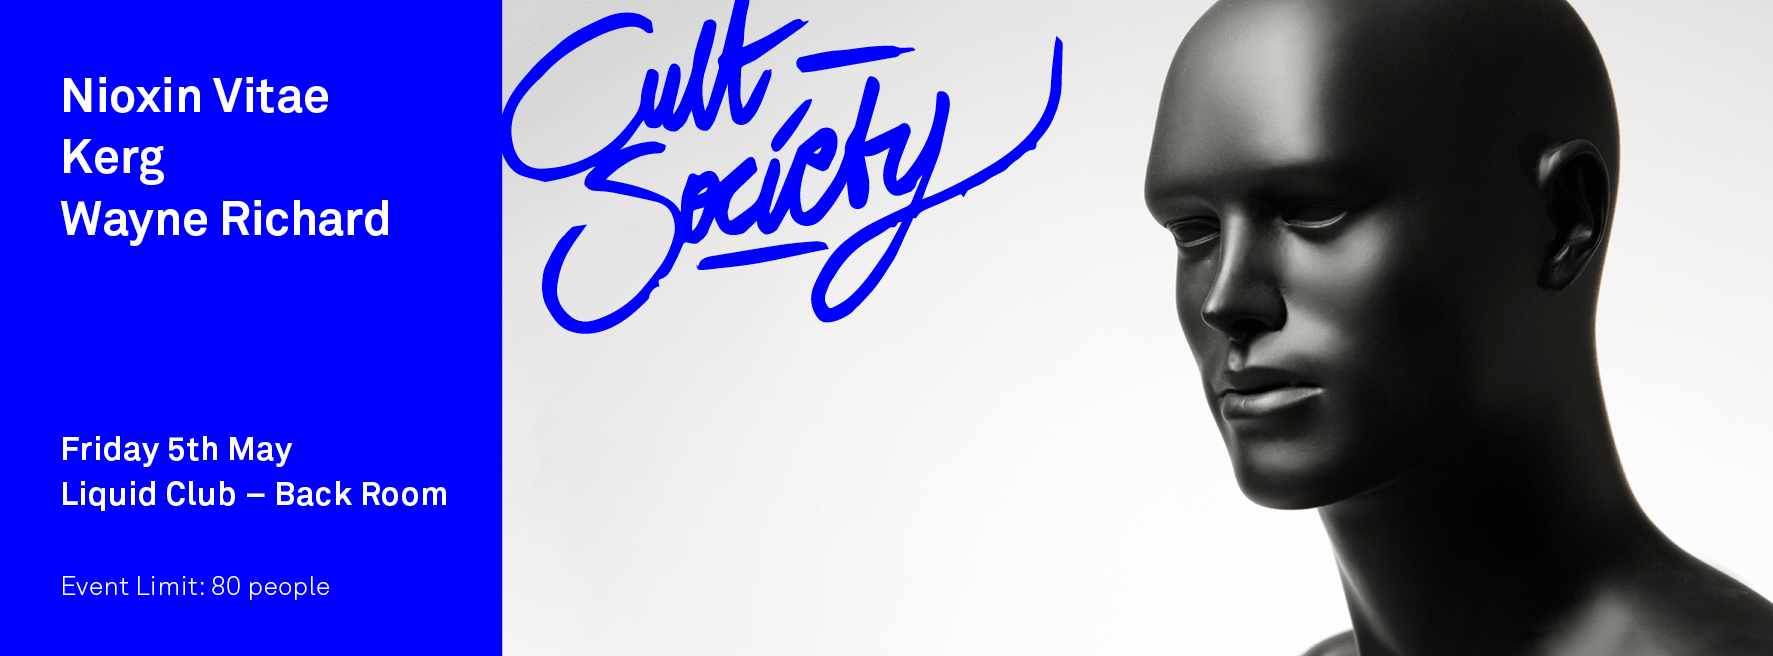 cult society techno electro event malta liquid club